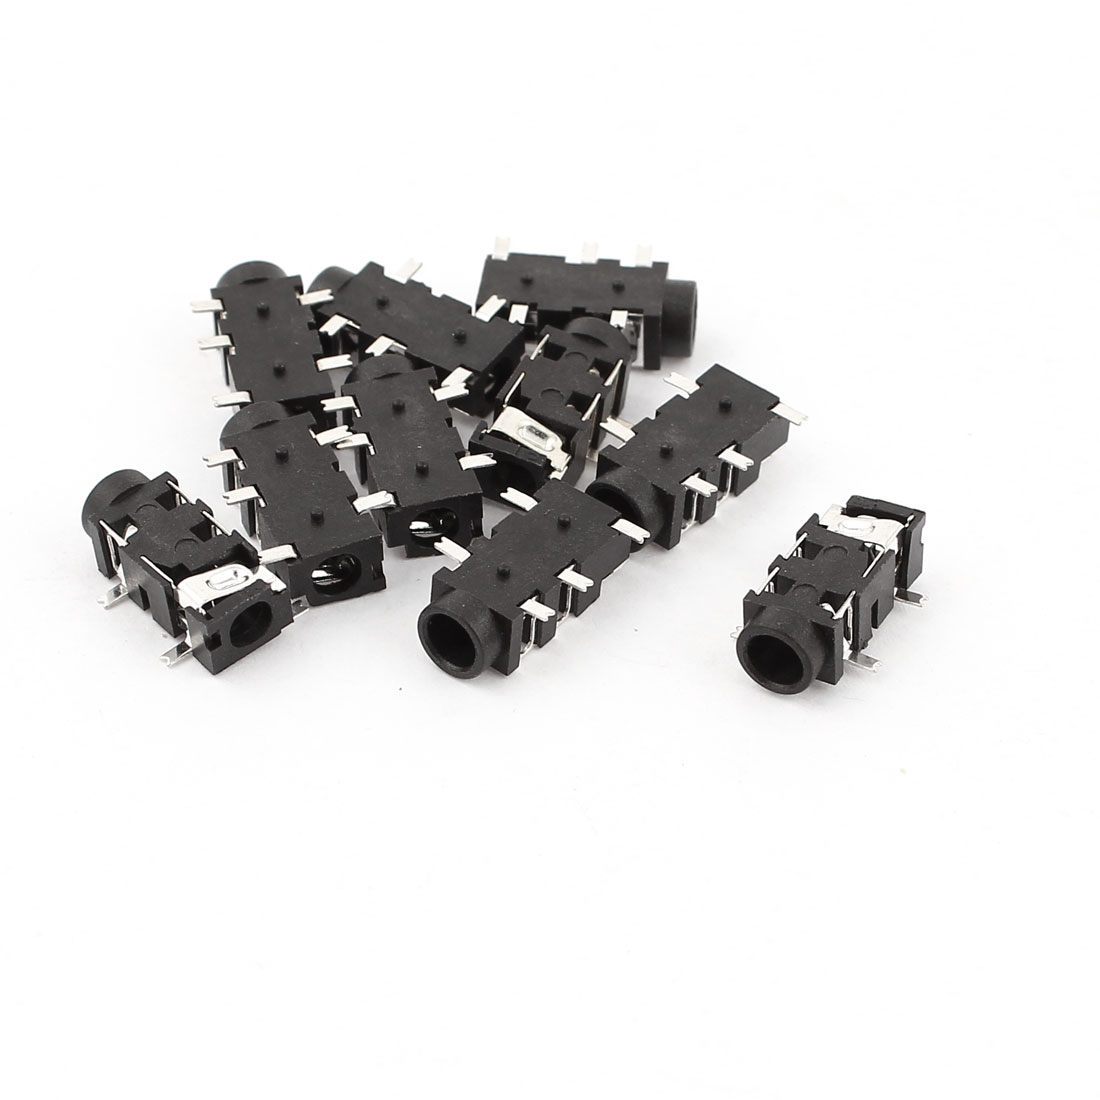 10 Pcs 5-Pin 3.5mm Female Headphone Stereo Socket Jack Connector Black